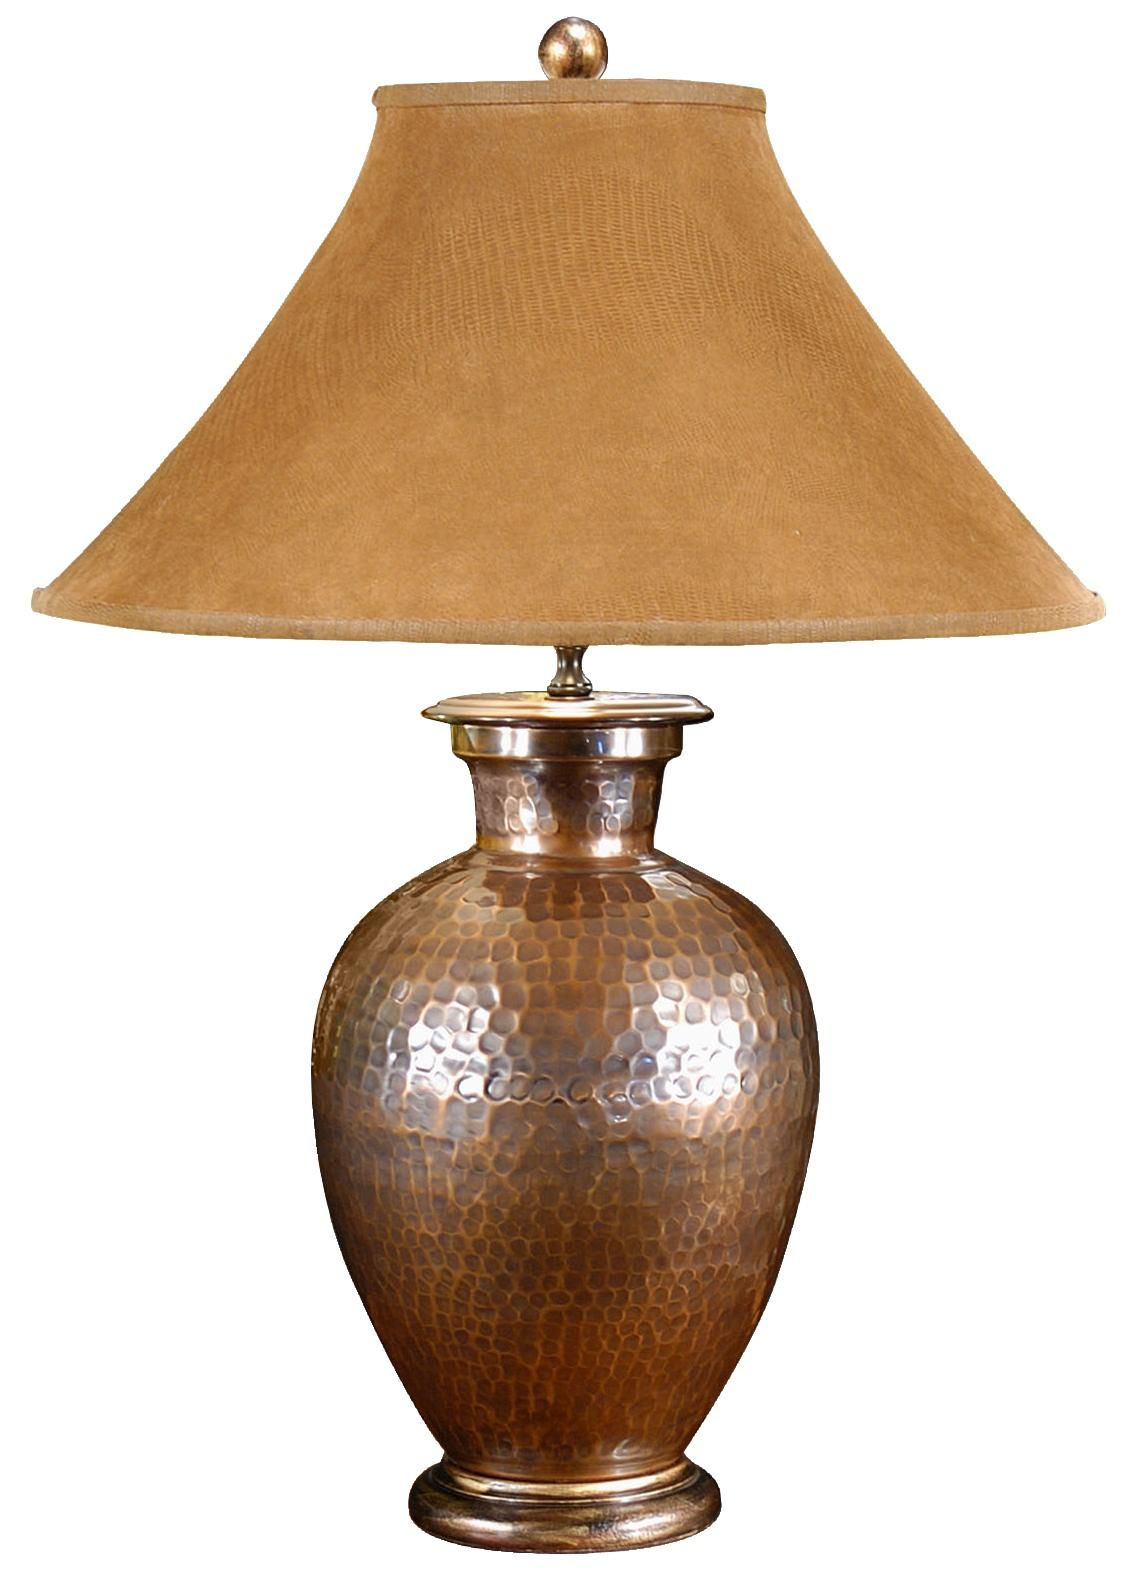 Wildwood antique copper hand hammered pot buffet table lamp wildwood antique copper hand hammered pot buffet table lamp leatherette bell shade 33 mozeypictures Image collections